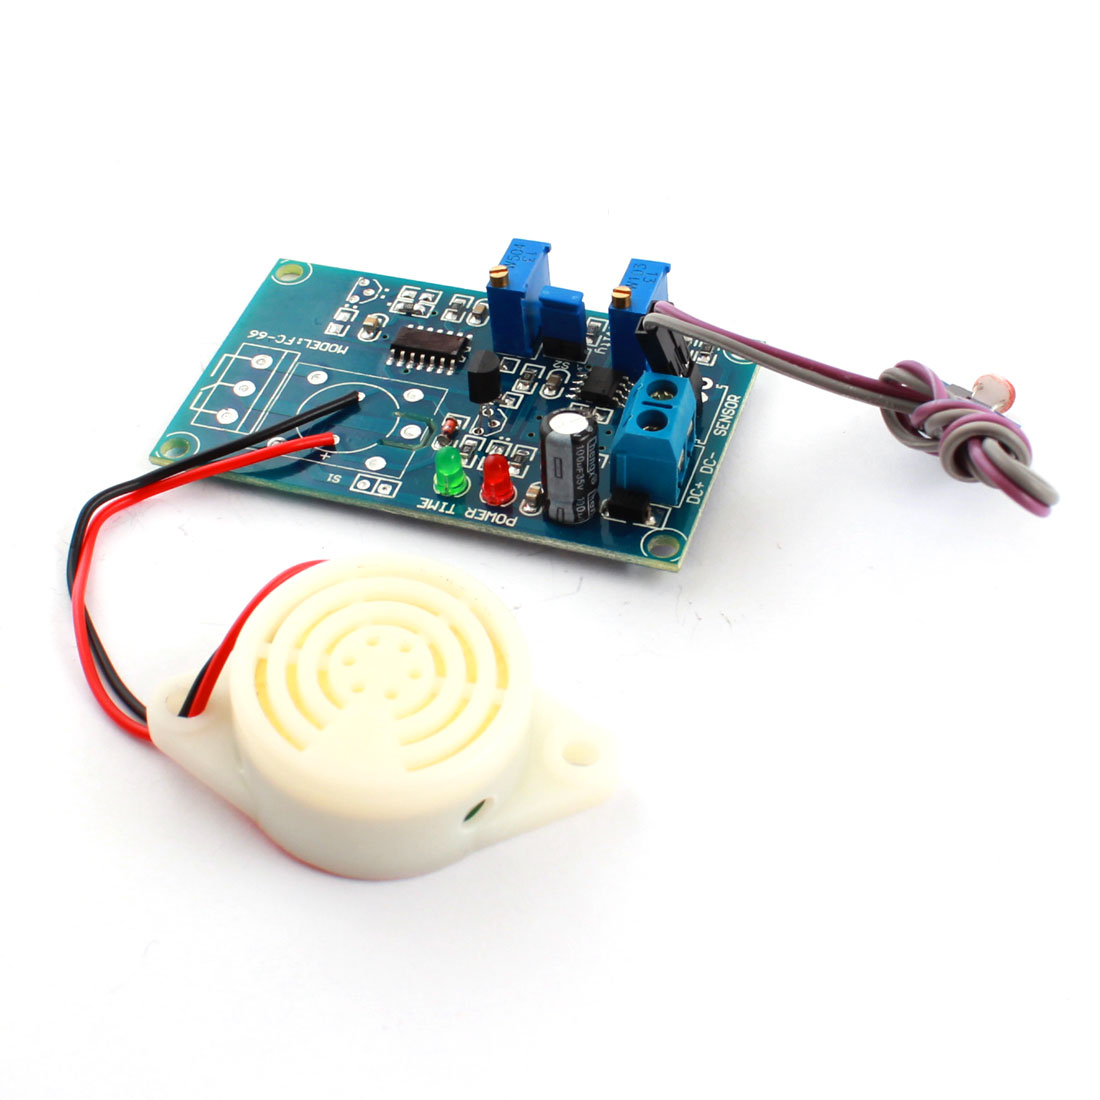 FC-66 DC 24V Photoswitch Light Detection Photoresistor Sensor Alarm Buzzer Time Delay PCB Circuit Module Green